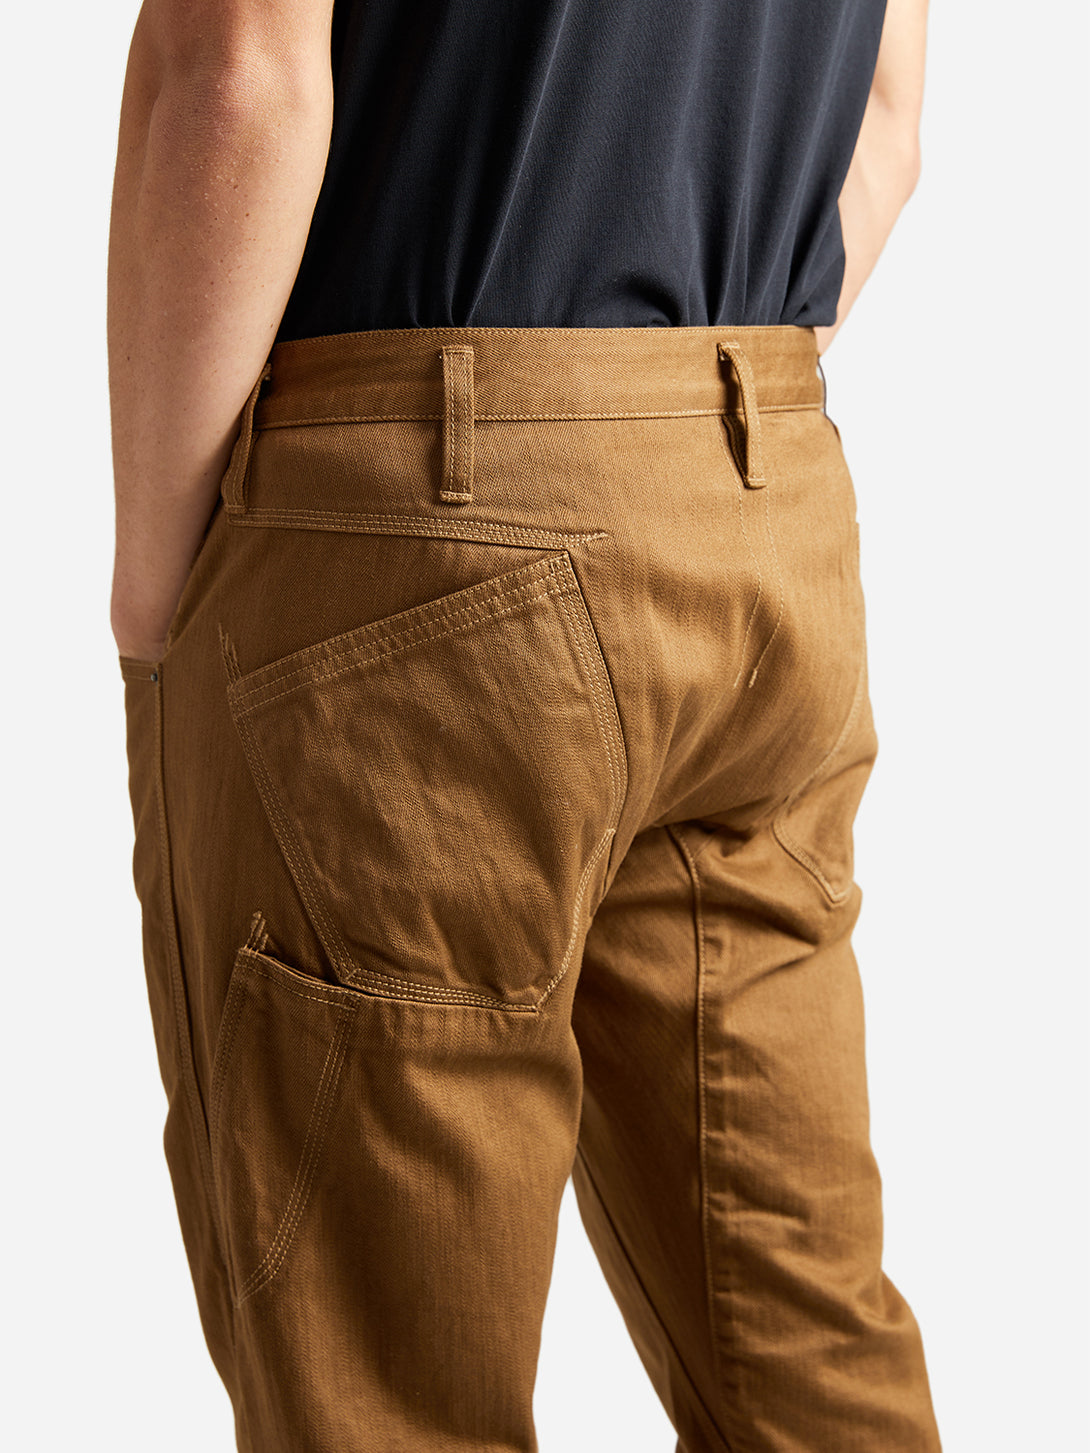 ons garage men's pants sepia